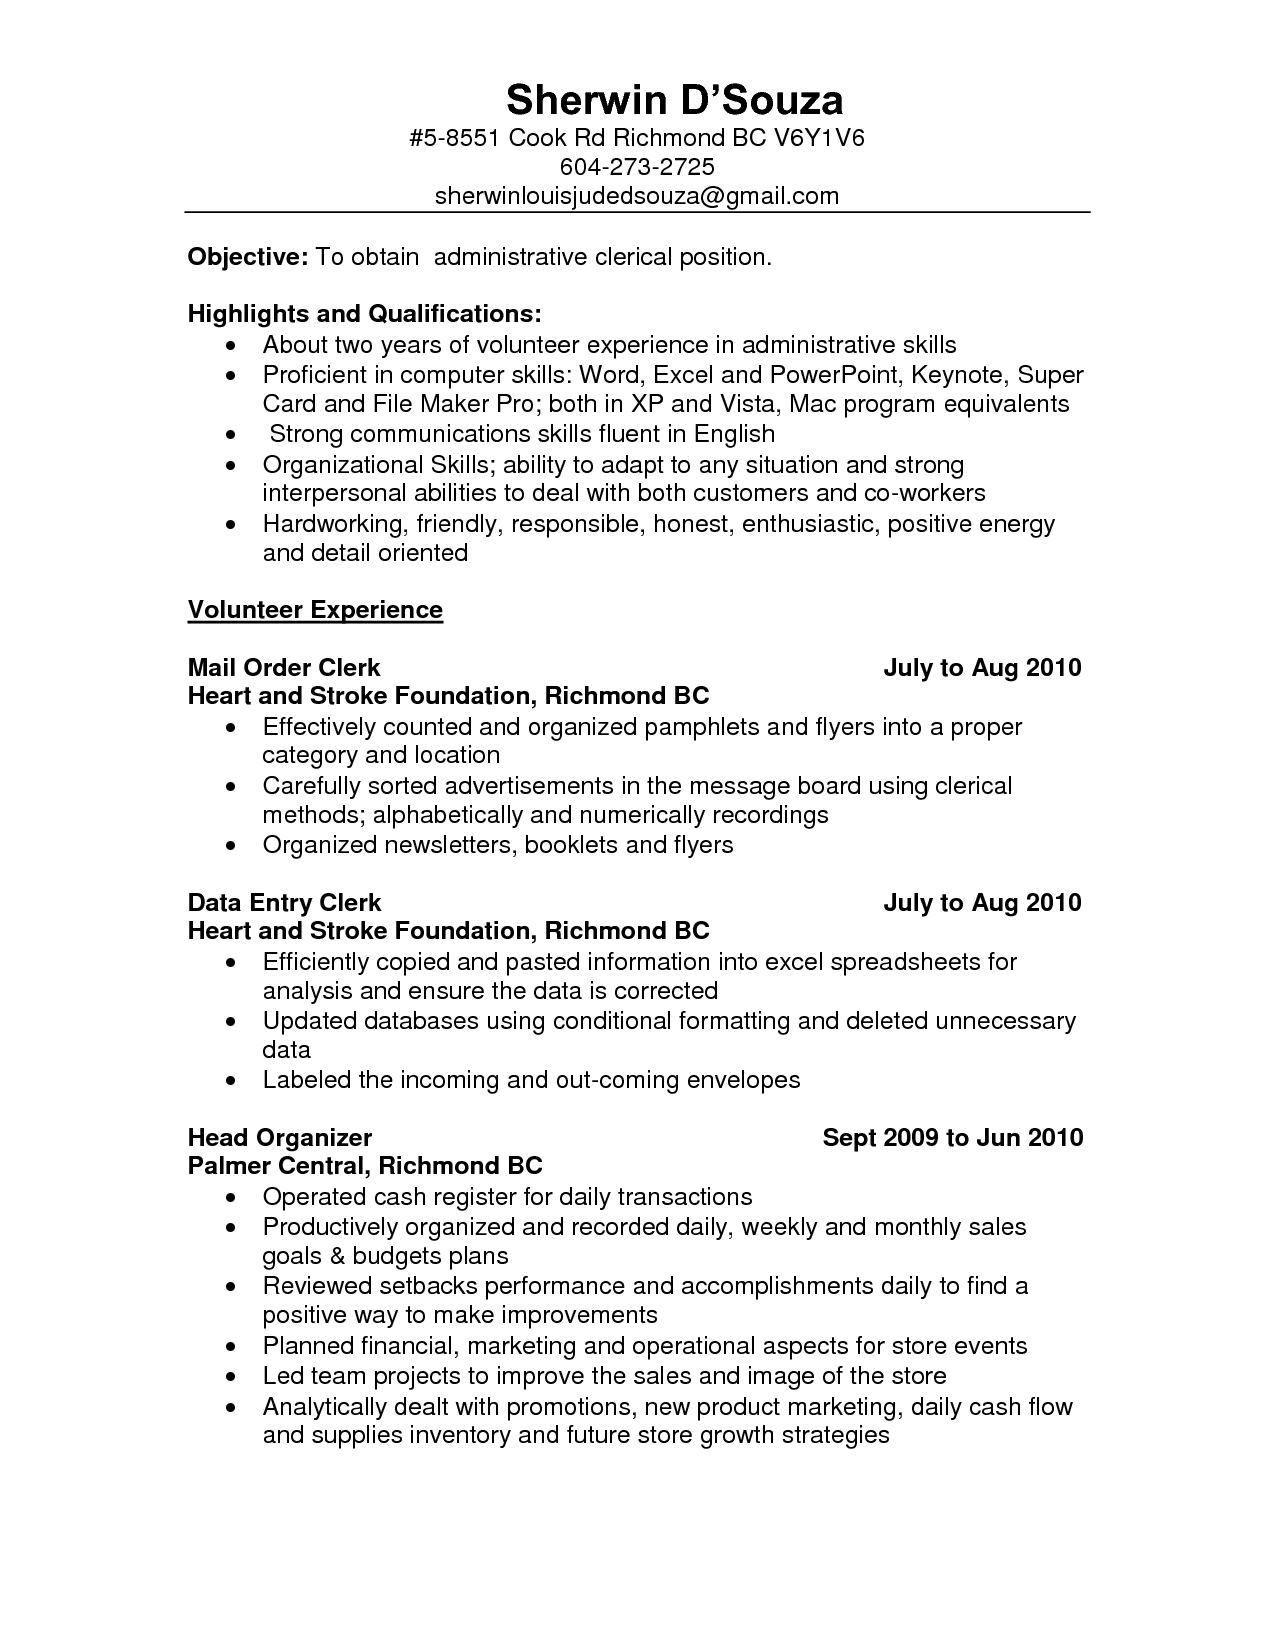 deli clerk resume samples template deli clerk resume samples